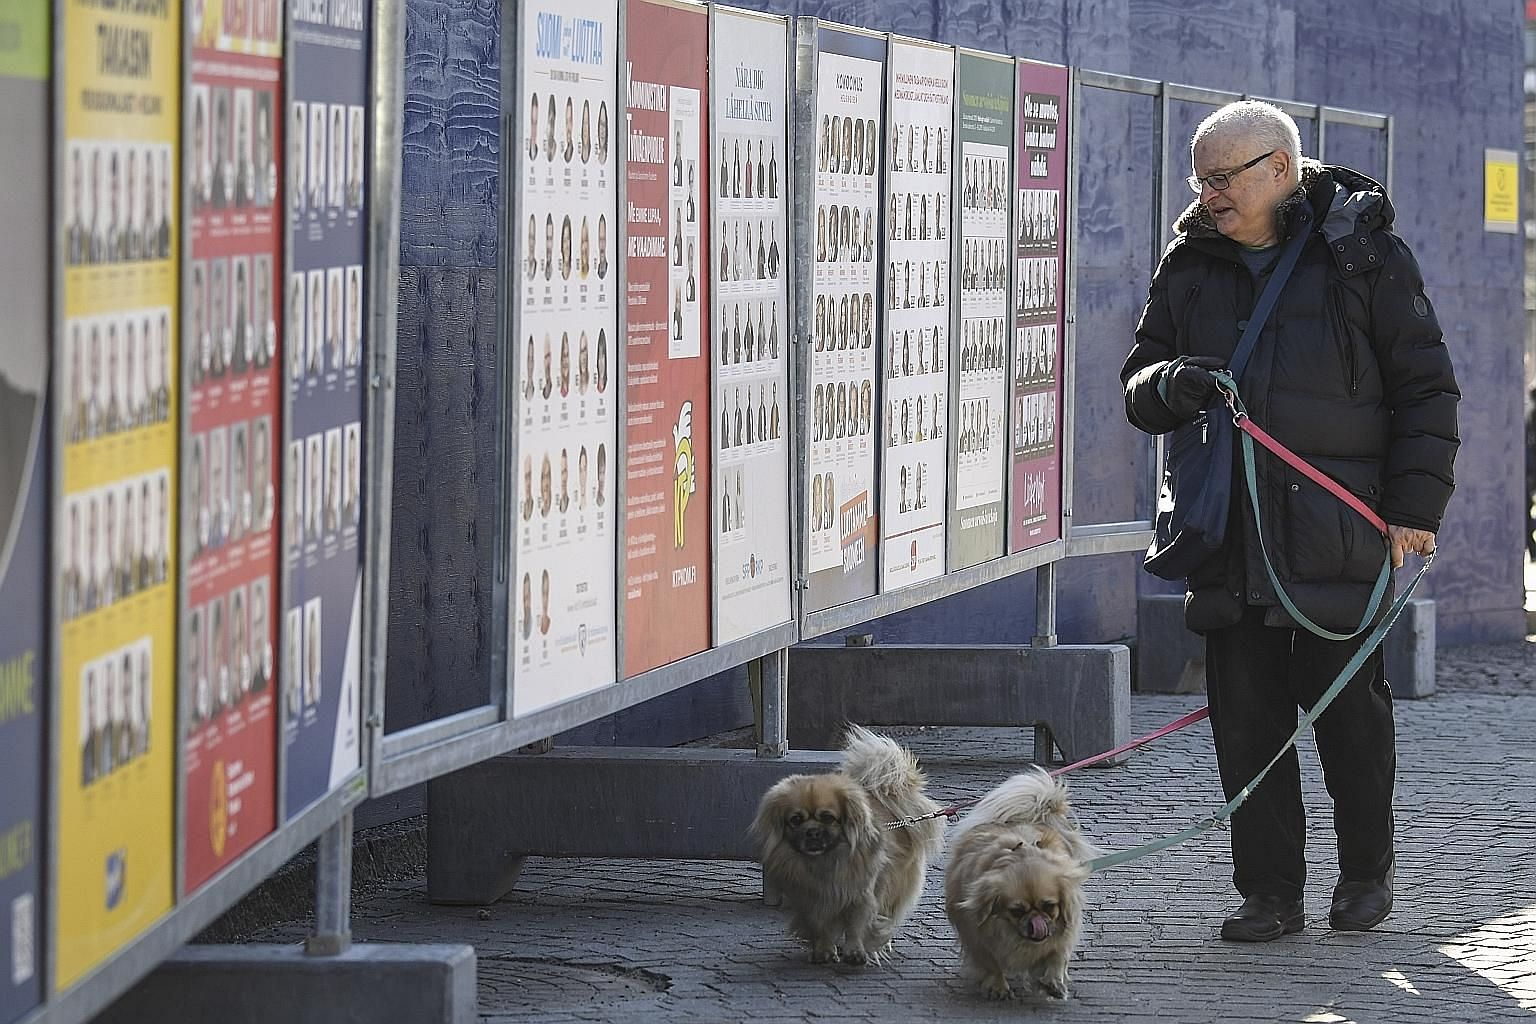 A man looking at campaign posters in Helsinki, with the parliamentary elections scheduled to be held in Finland on April 14. The country and its rapidly ageing population is a vivid demonstration that demographic change forces hard choices between po